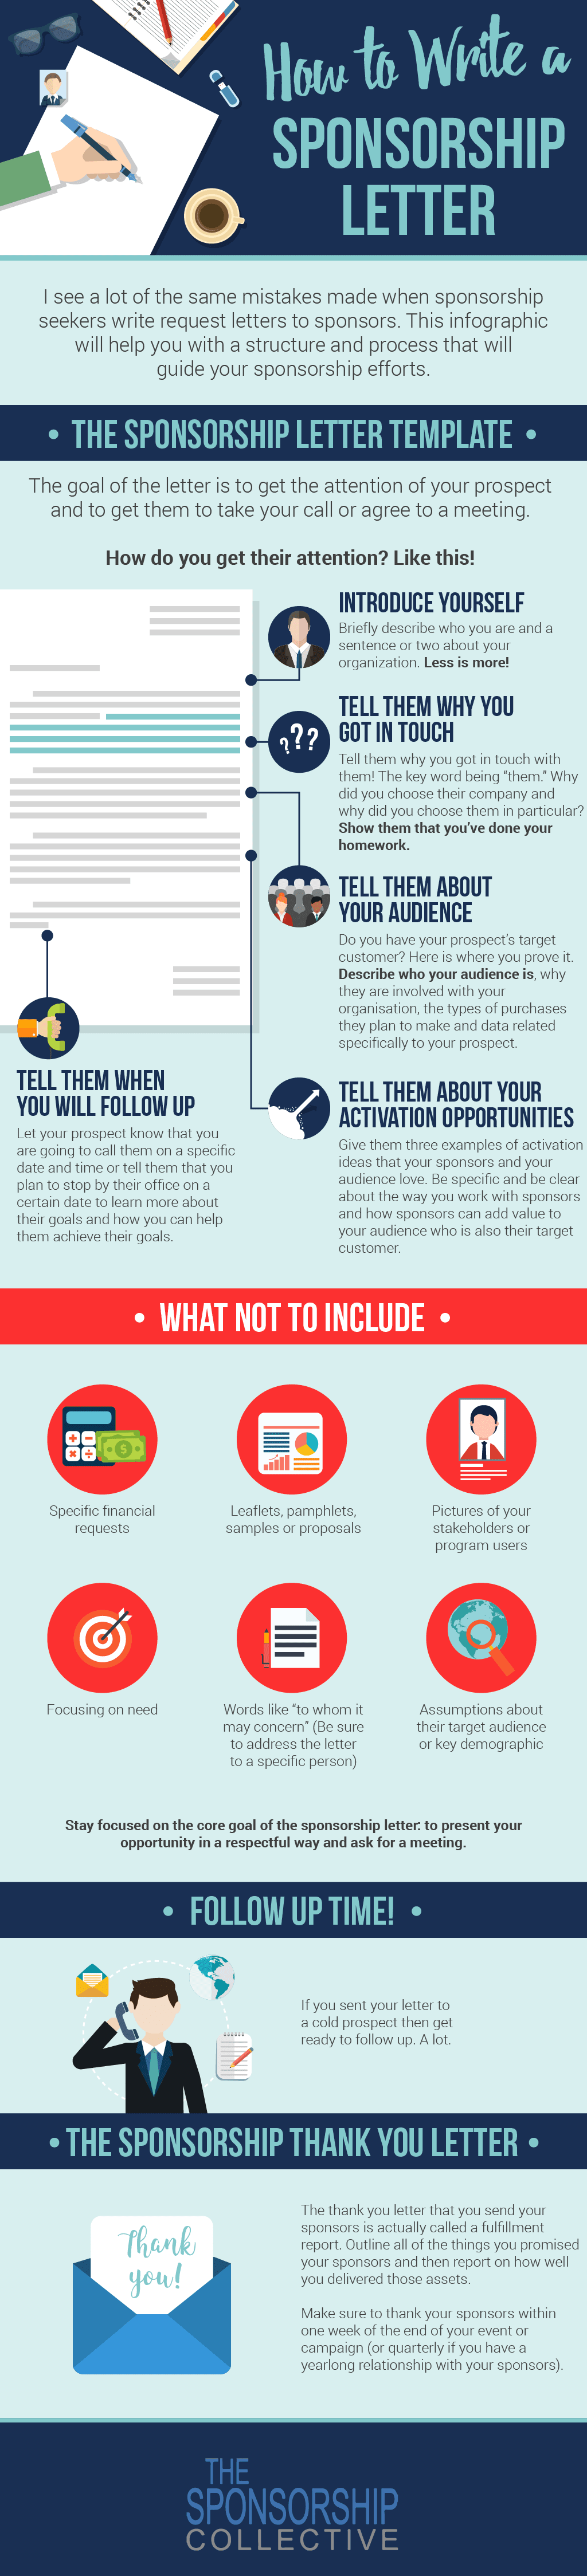 How to write a sponsorship letter with a template and infographic how to write a sponsorship letter expocarfo Gallery